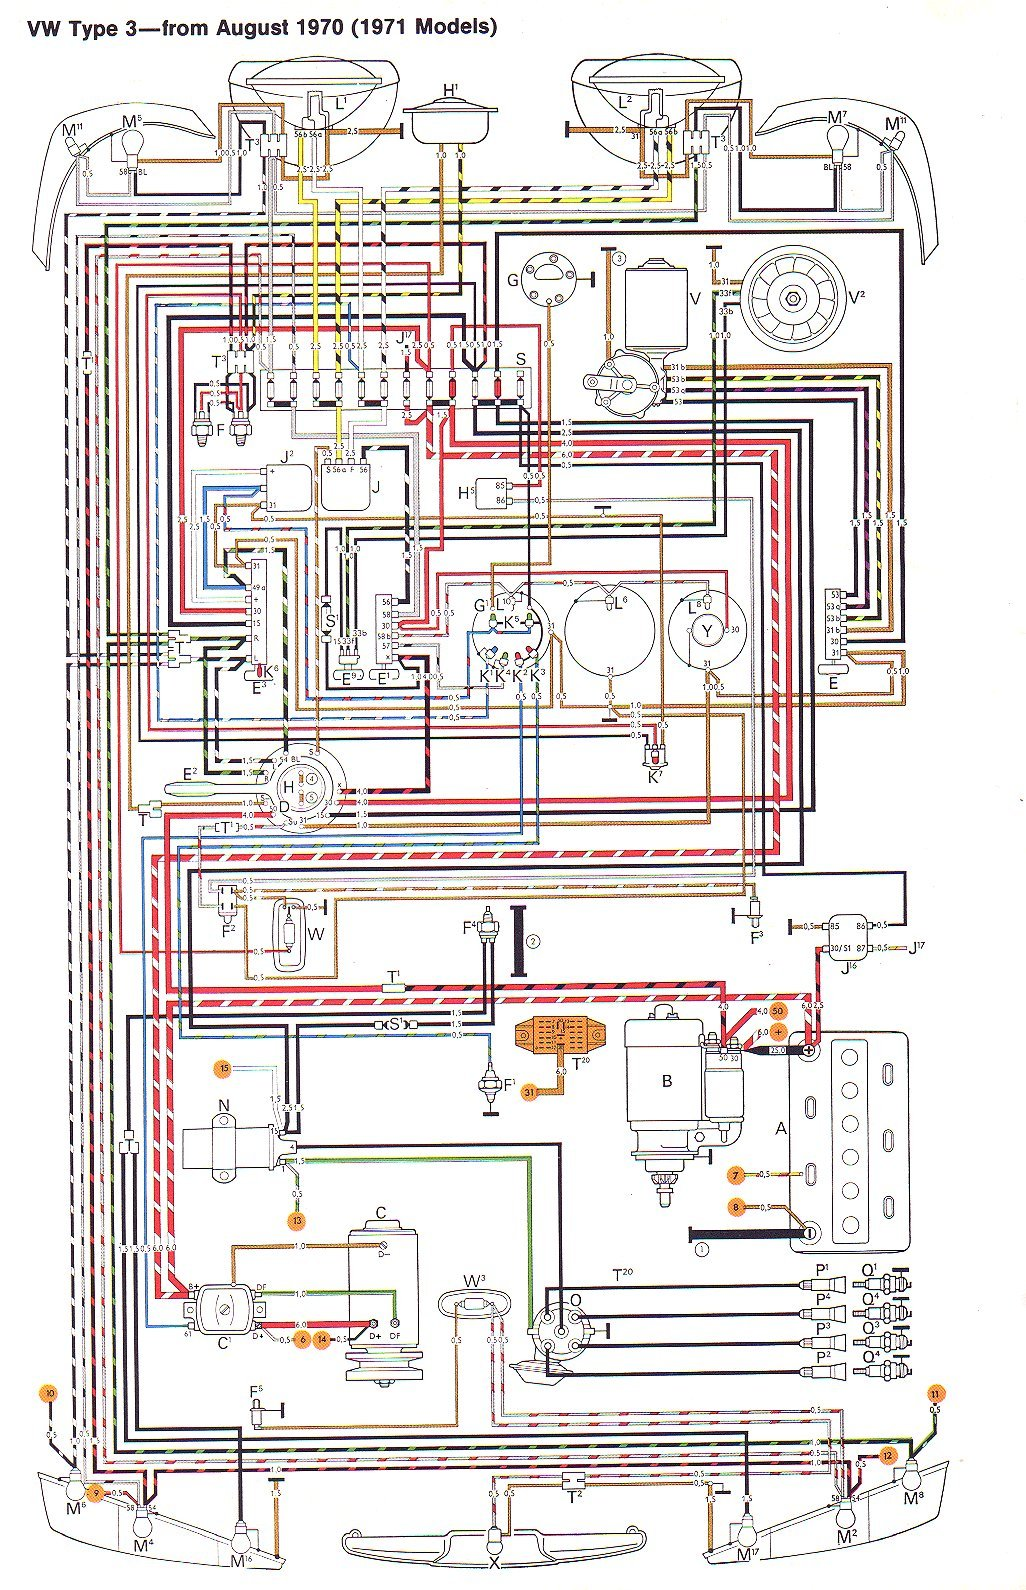 Vw 1600 Wiring Diagram List Of Schematic Circuit Cbr900rr Type 3 Diagrams Rh Hallvw Clara Net Coil